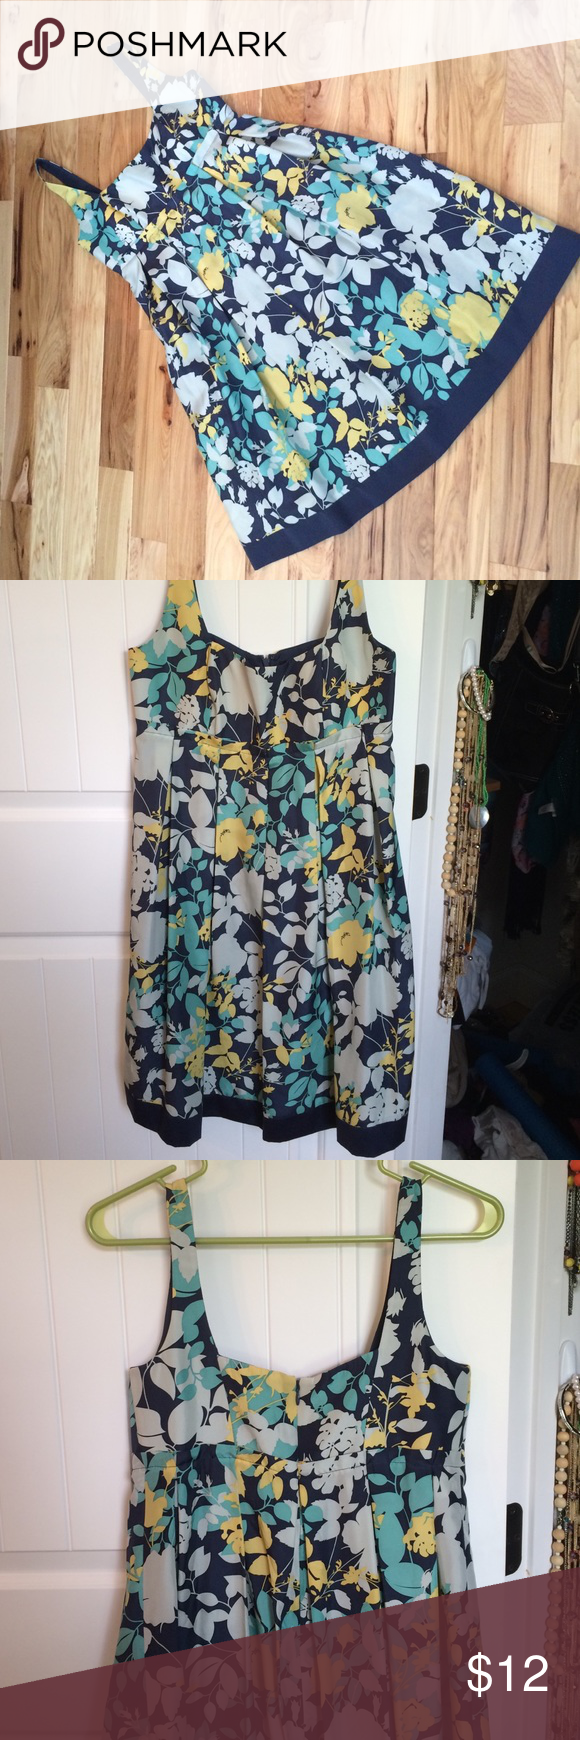 Max and Cleo floral dress 100%silk navy, gray, yellow, and green floral dress. Empire waist. Zip back.  Pleat detail. Dry clean only. Max & Cleo Dresses Mini